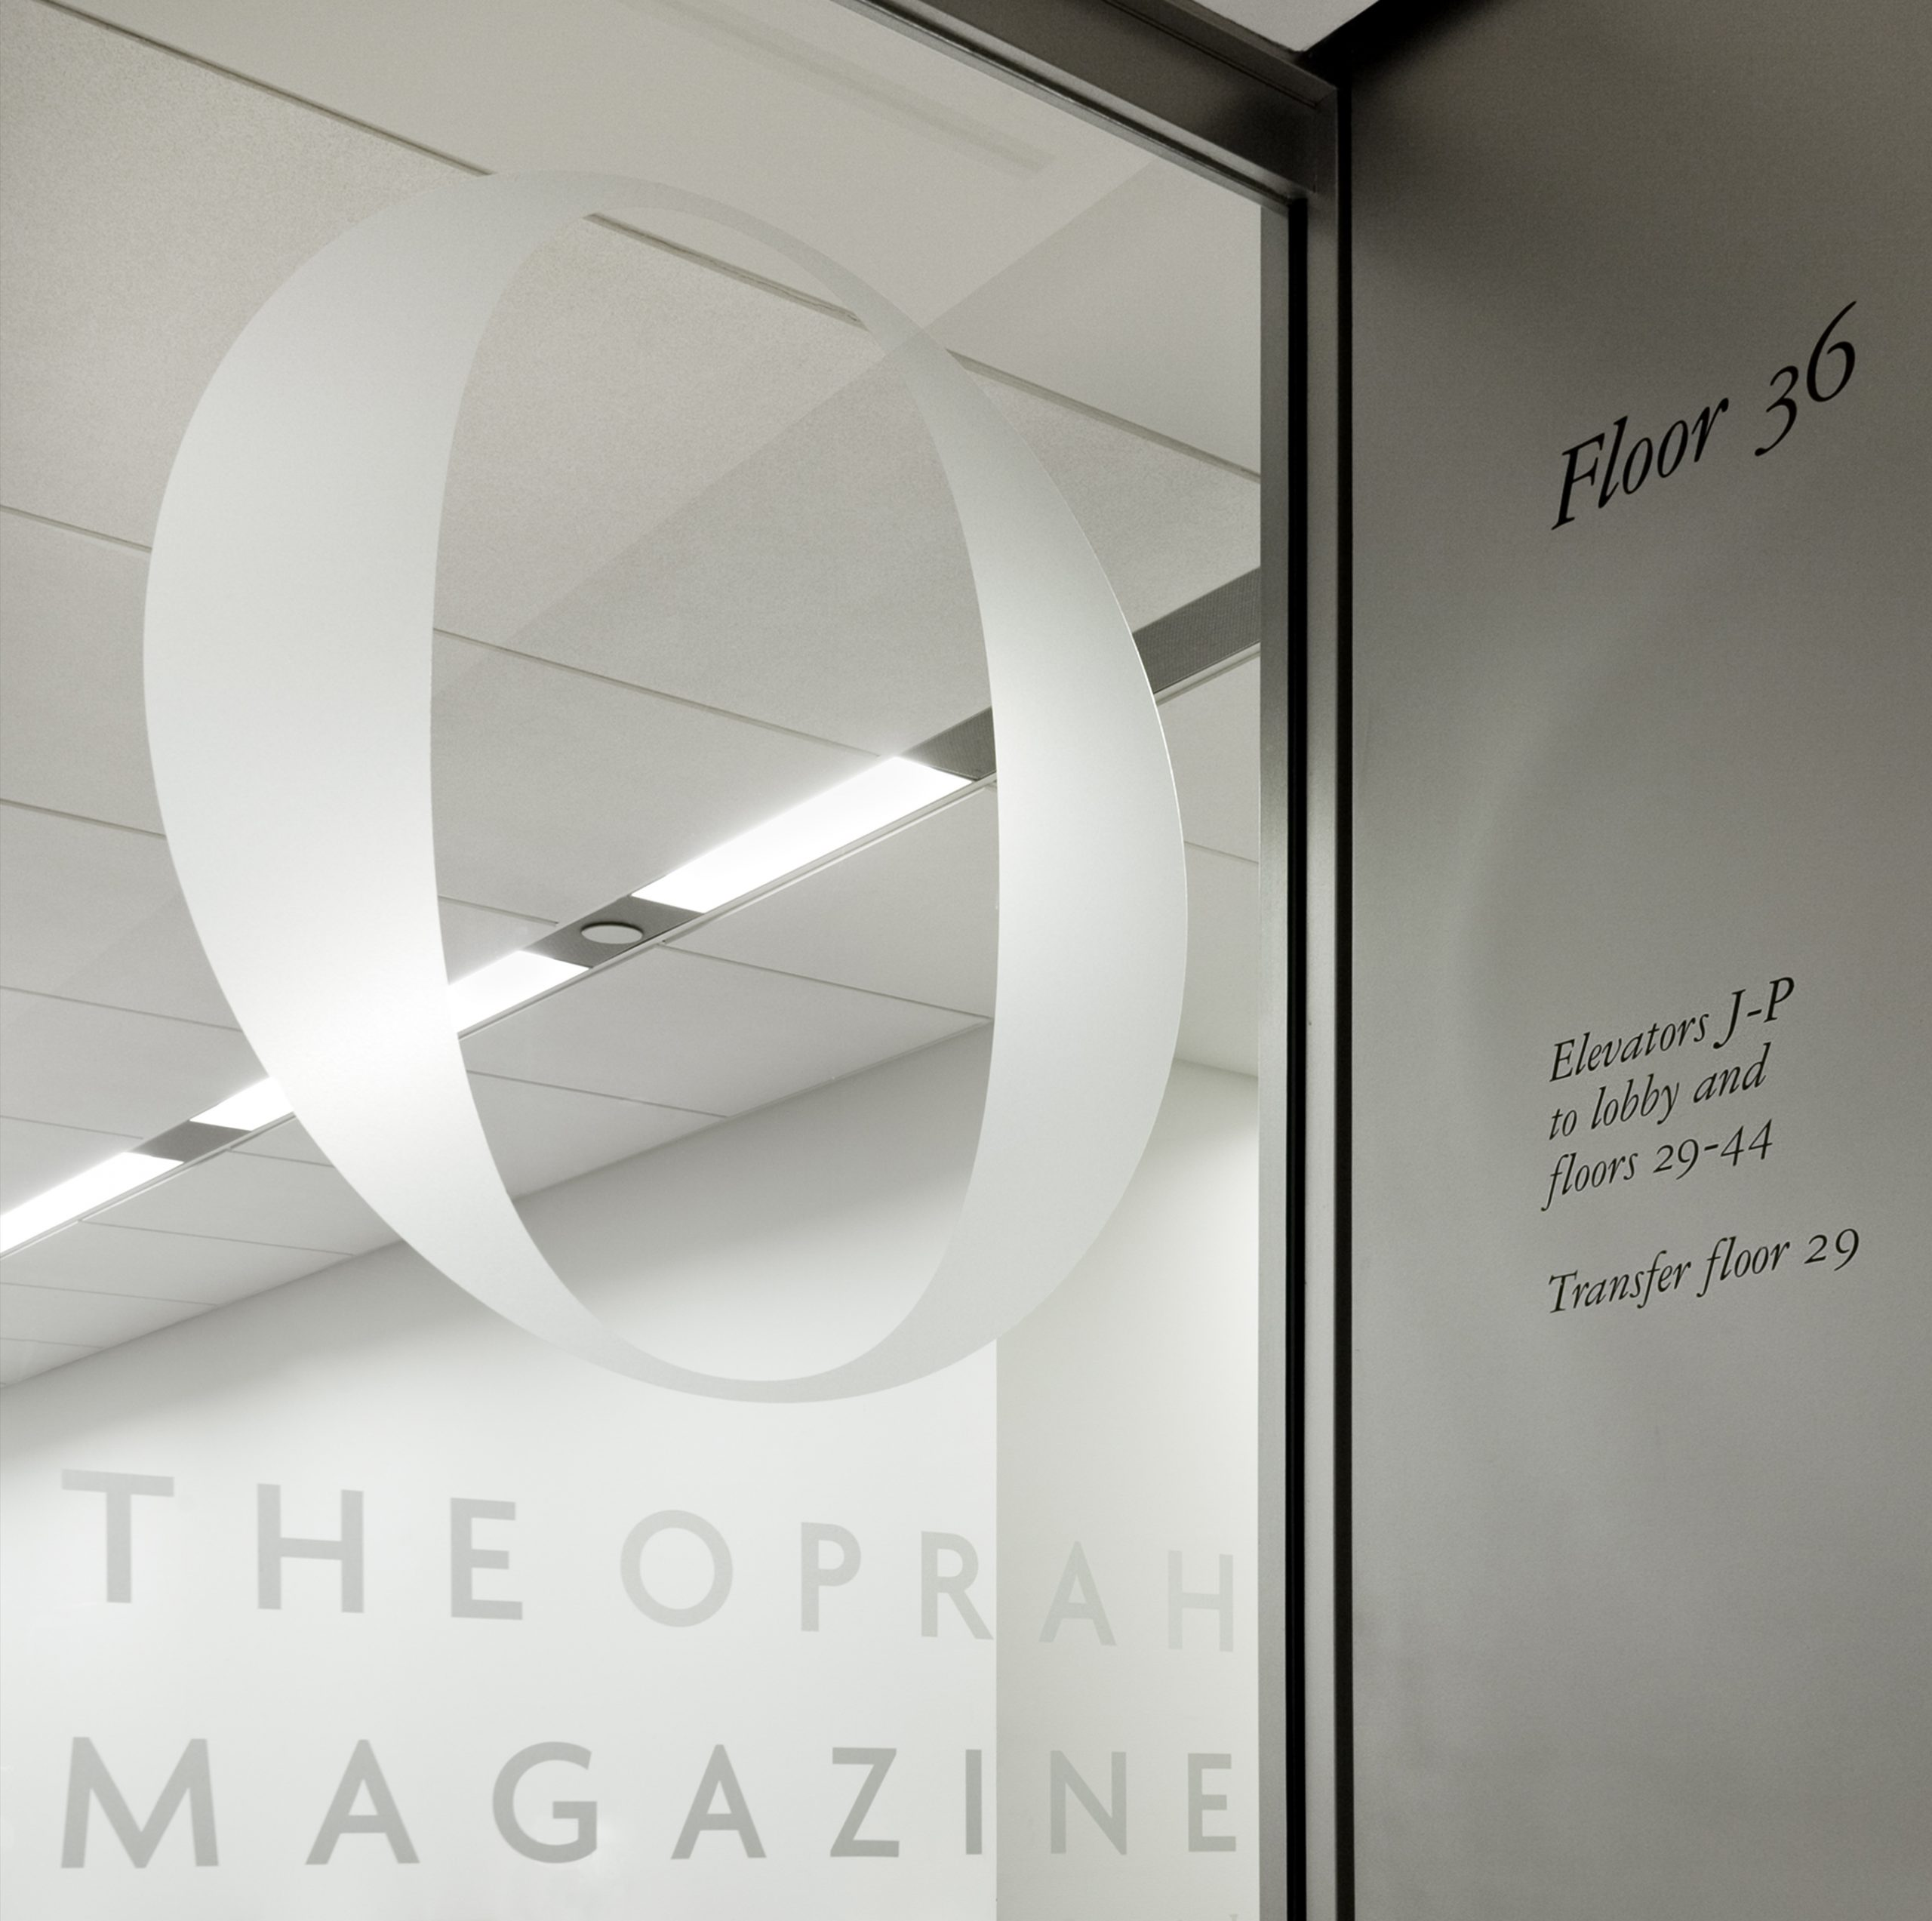 Project image 8 for Hearst Tower Signage, Hearst Corporation